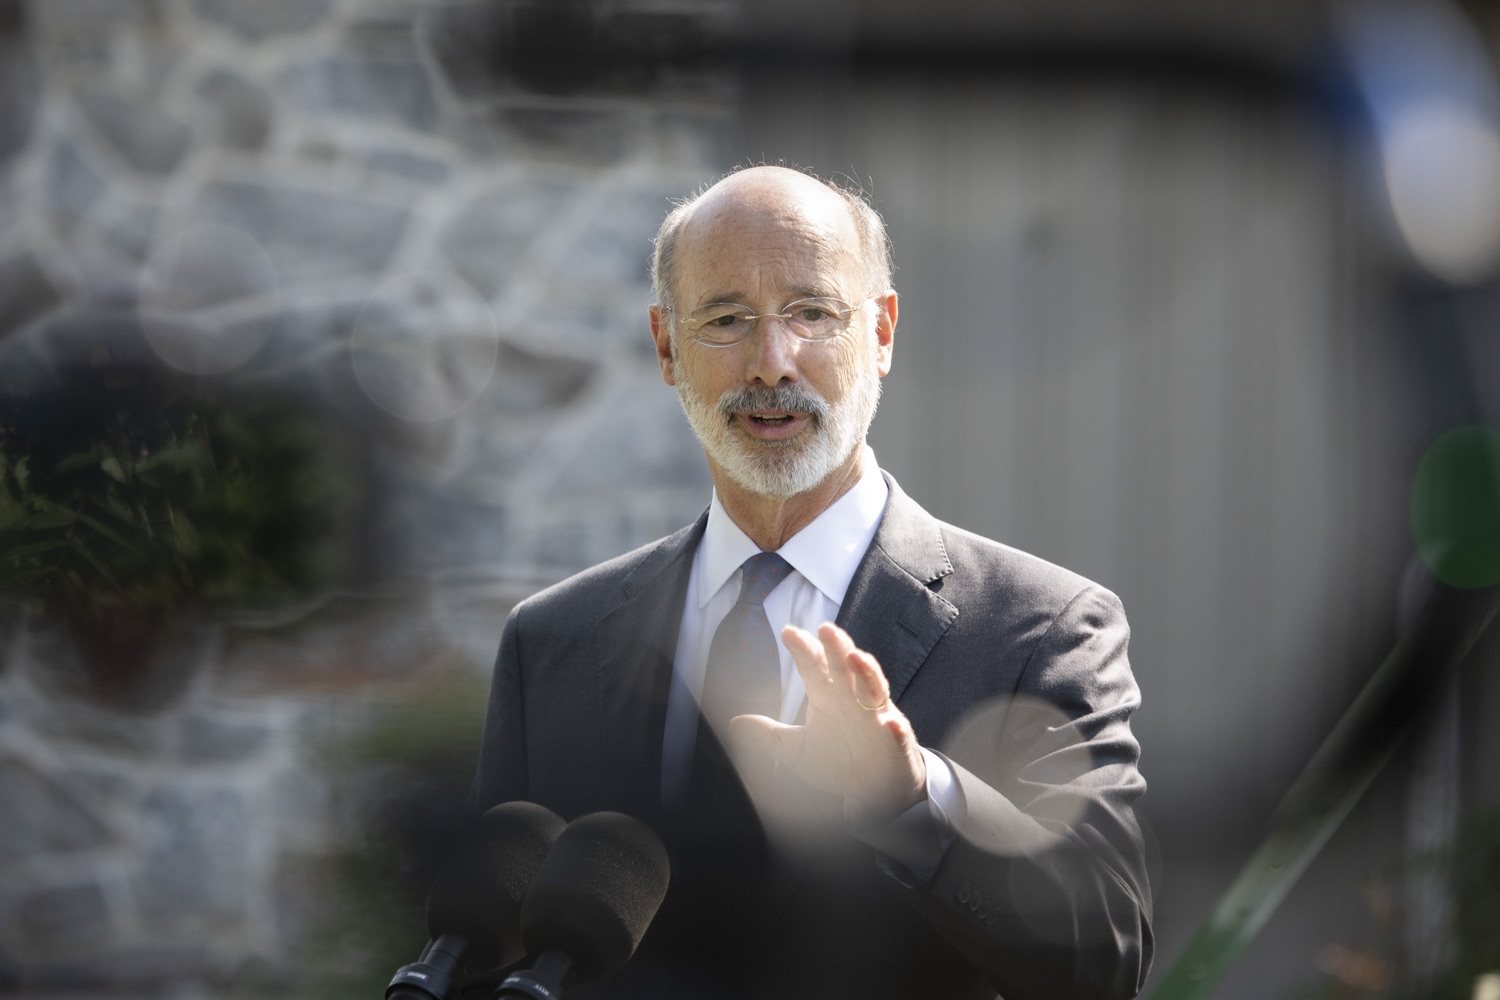 "<a href=""https://filesource.wostreaming.net/commonwealthofpa/photo/18248_gov_evictions_dz_028.jpg"" target=""_blank"">⇣ Download Photo<br></a>Pennsylvania Governor Tom Wolf speaking to the press. With rent and mortgage debt mounting for hundreds of thousands of Pennsylvanians, Governor Tom Wolf is calling on the General Assembly to fix a state relief program to prevent many families from becoming homeless and enact a moratorium on evictions and foreclosures until the end of the year. The governor was joined today by legislators and housing advocates at a press conference in Lancaster County. Harrisburg, PA  Sept. 8, 2020"